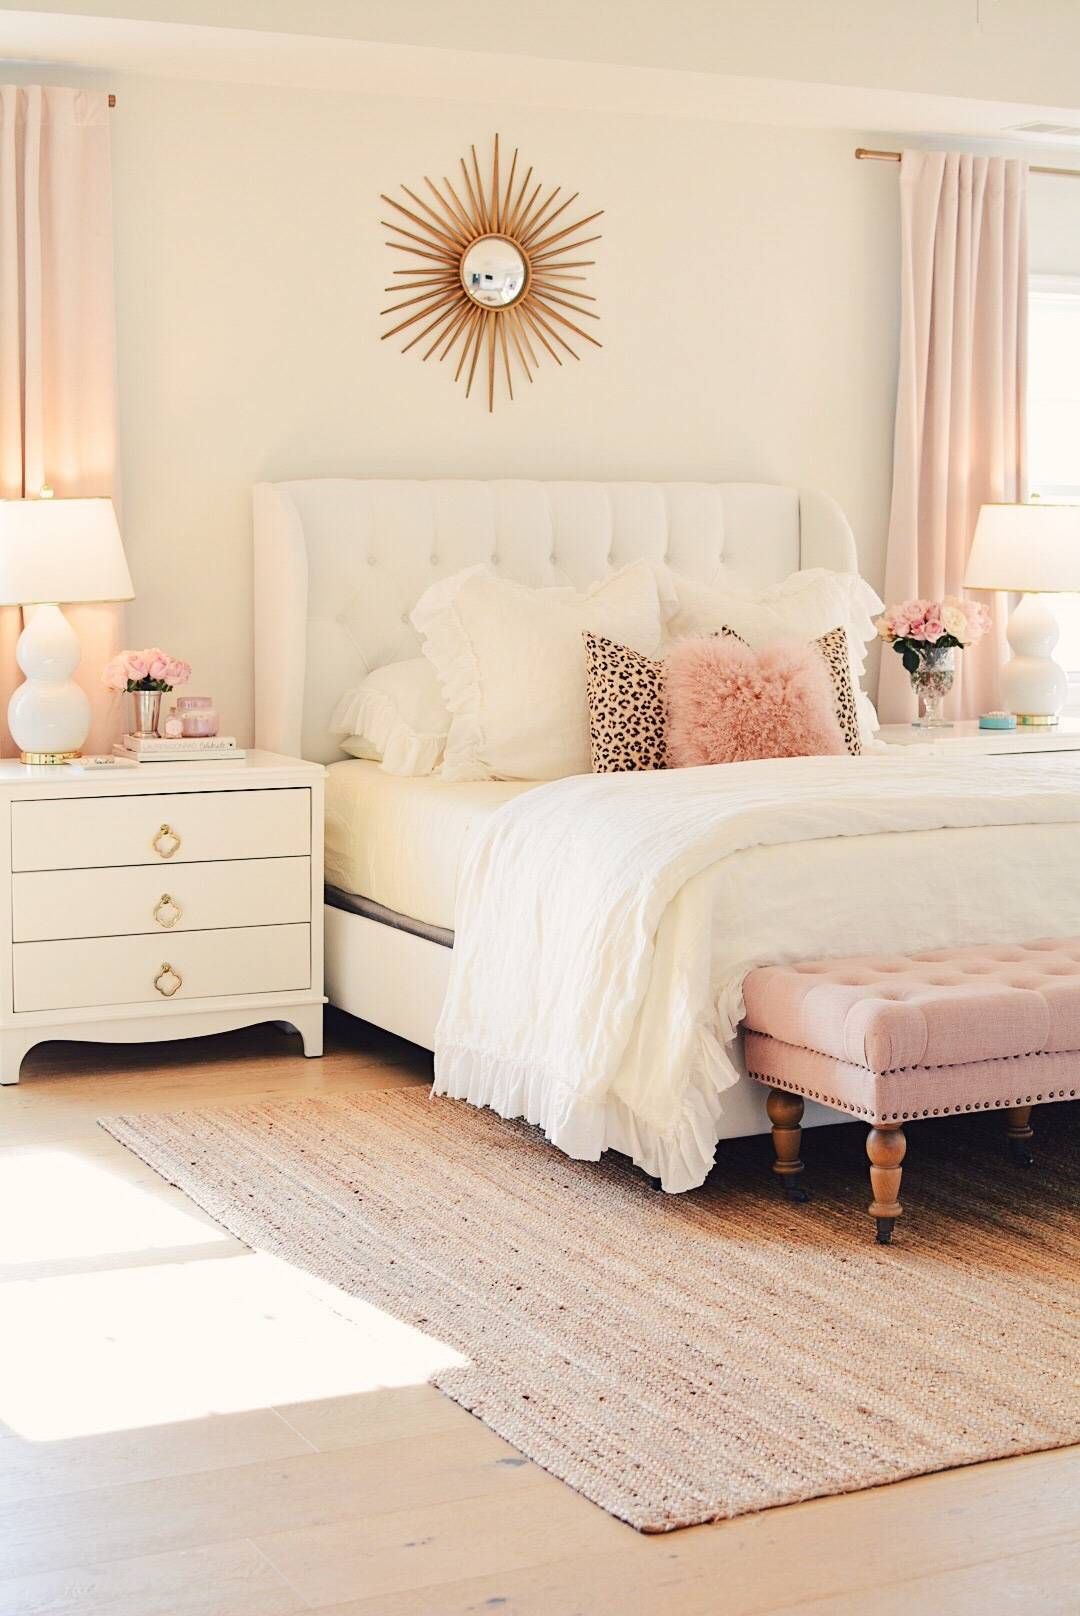 Bedroom Decor Ideas A Romantic Master Bedroom Makeover The Pink Dream Bedroom Decorating Tips Mismatched Living Room Furniture Apartment Bedroom Decor